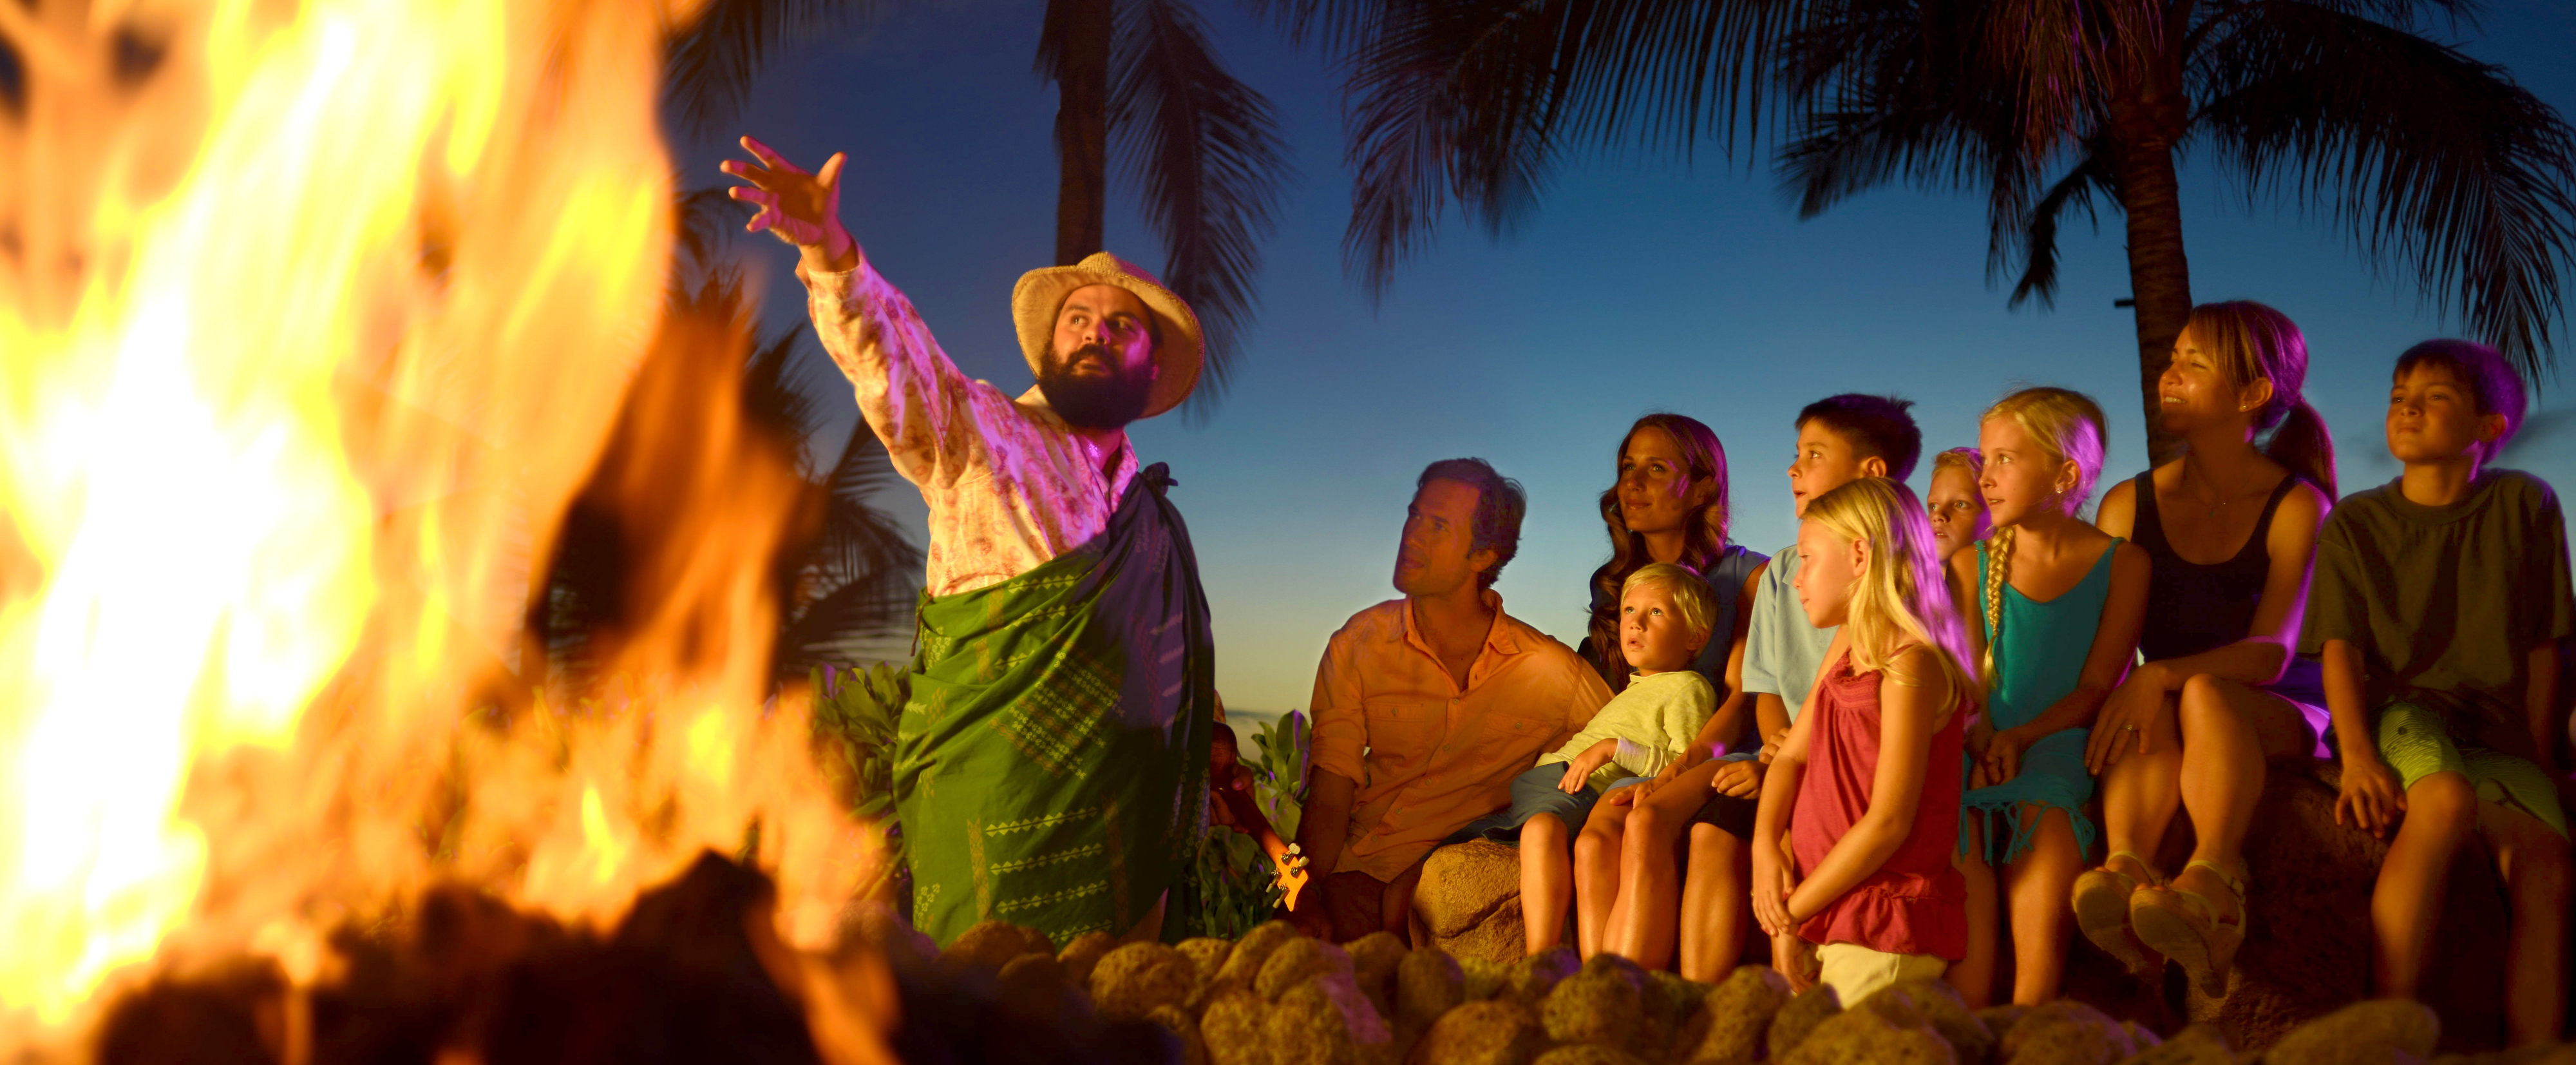 A man in a hat and sarong gestures dramatically toward a blazing fire pit while kids and parents watch